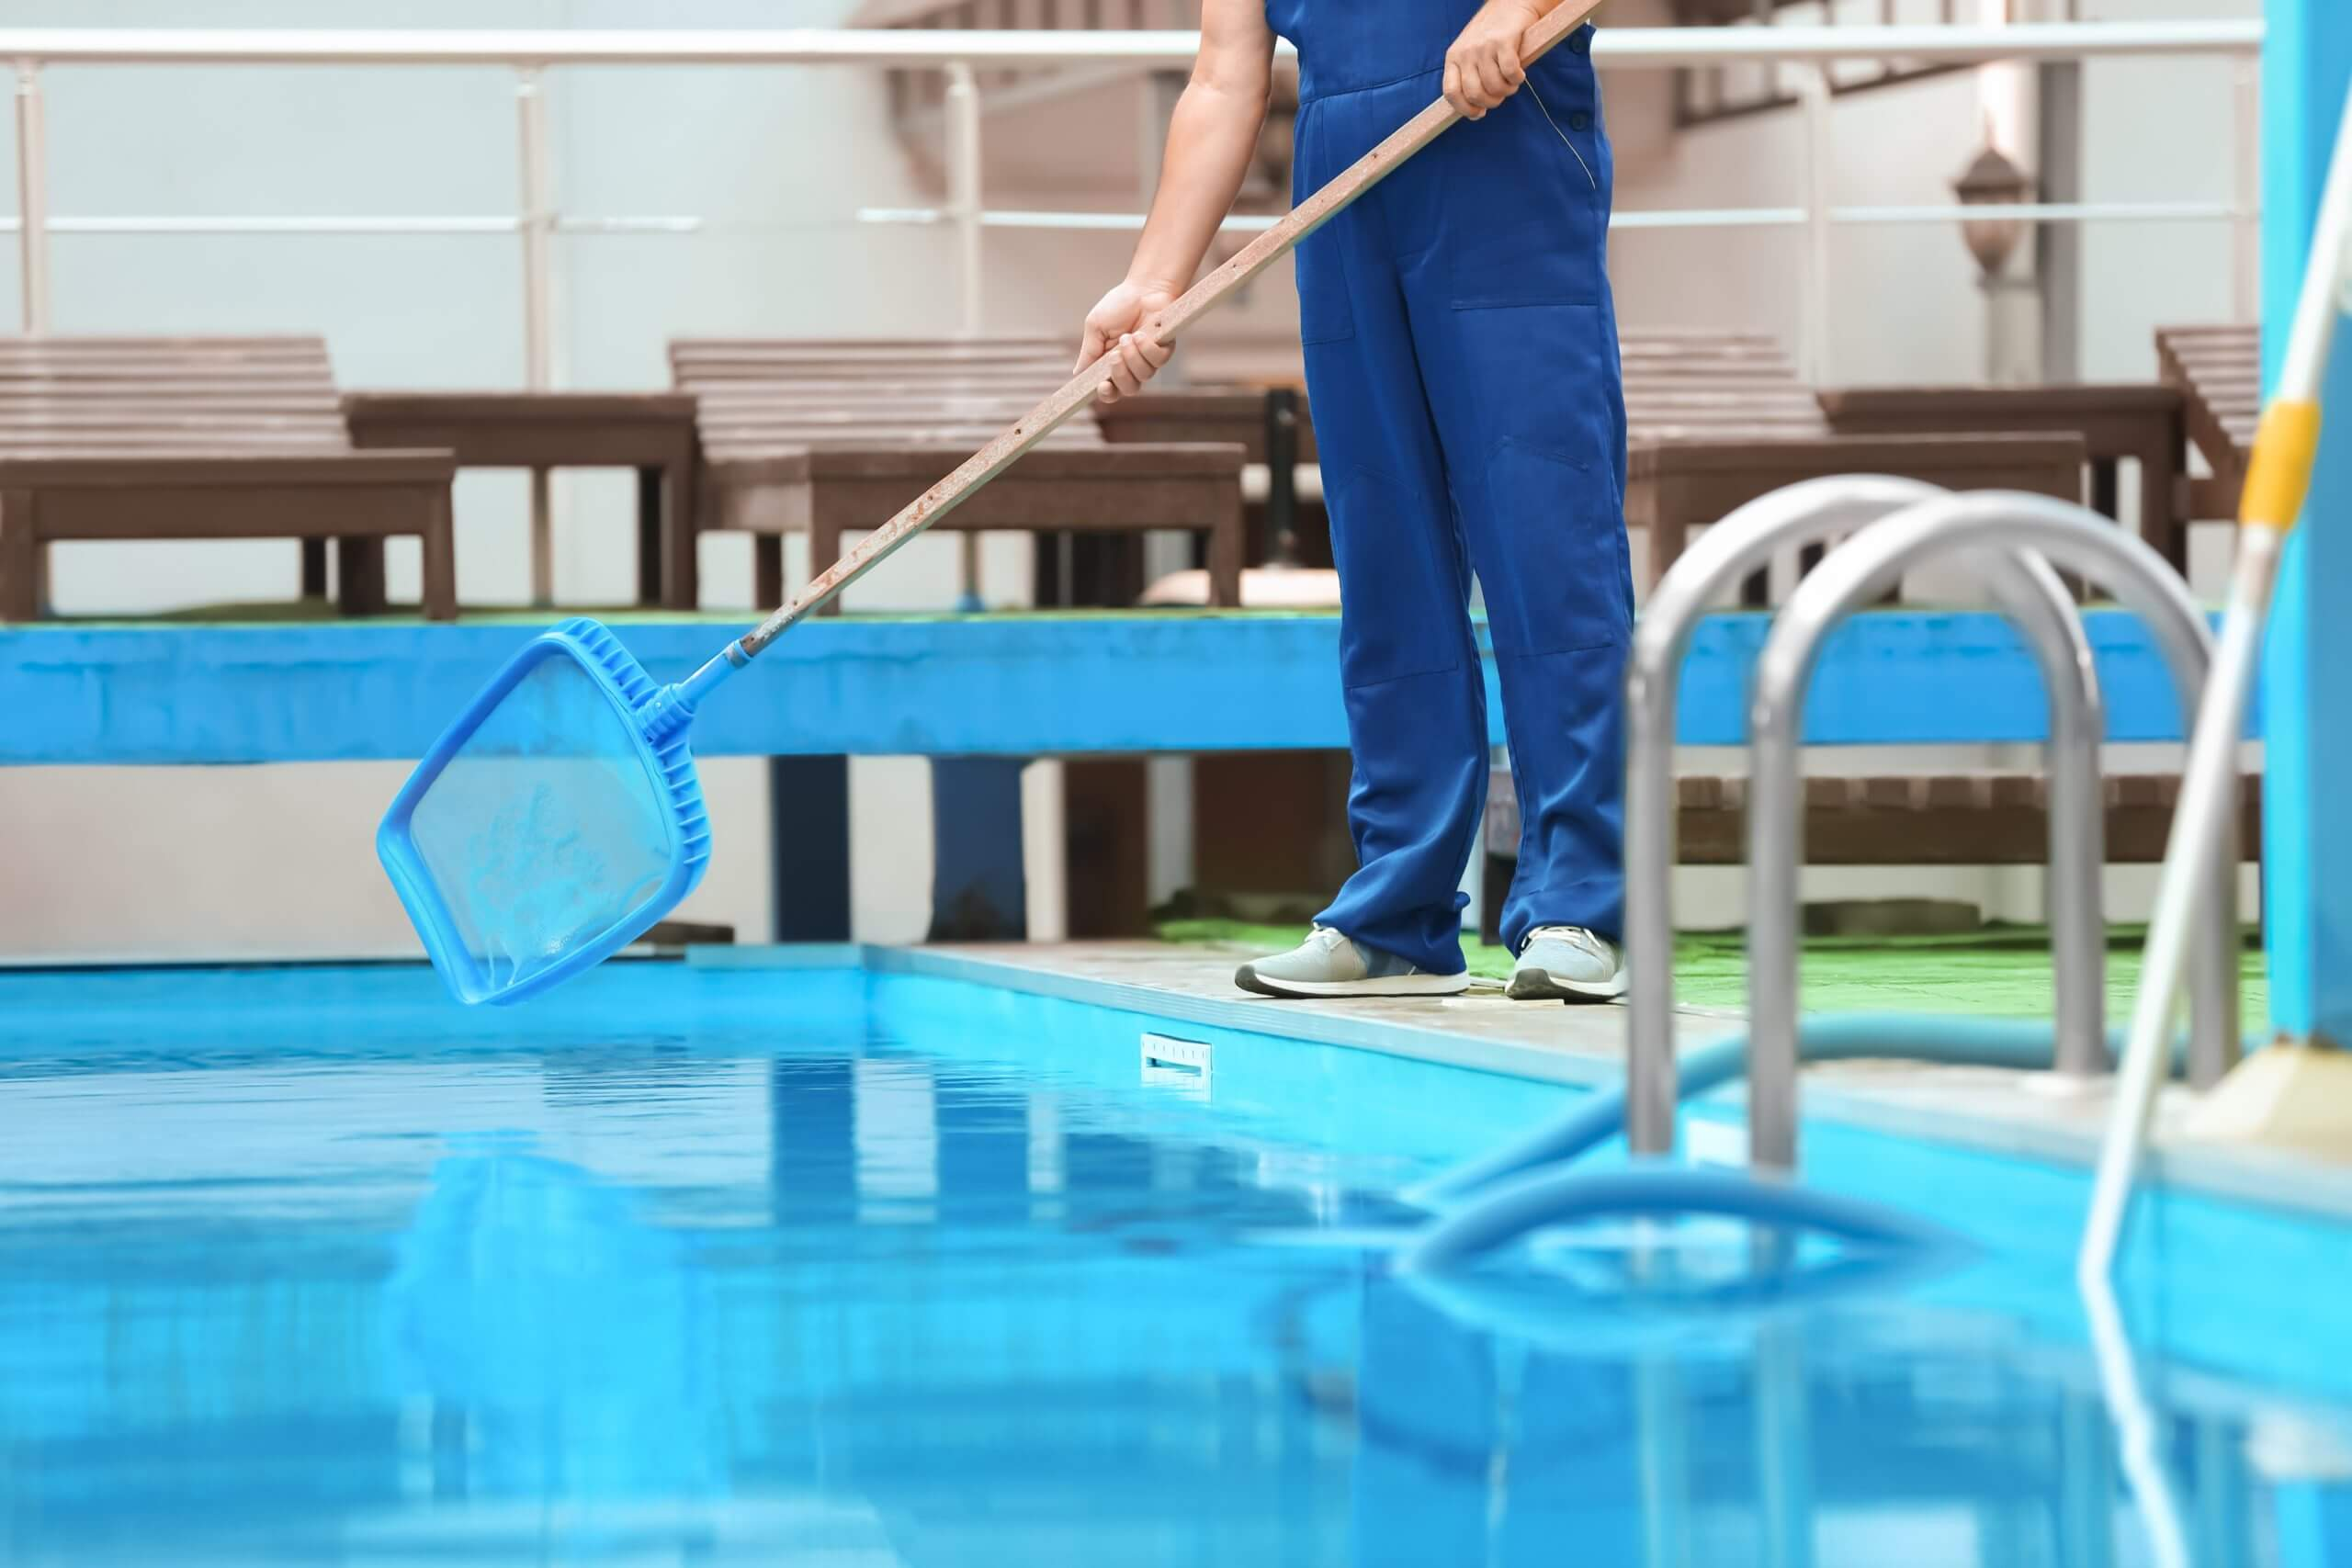 15 qualities of a good pool cleaning service provider